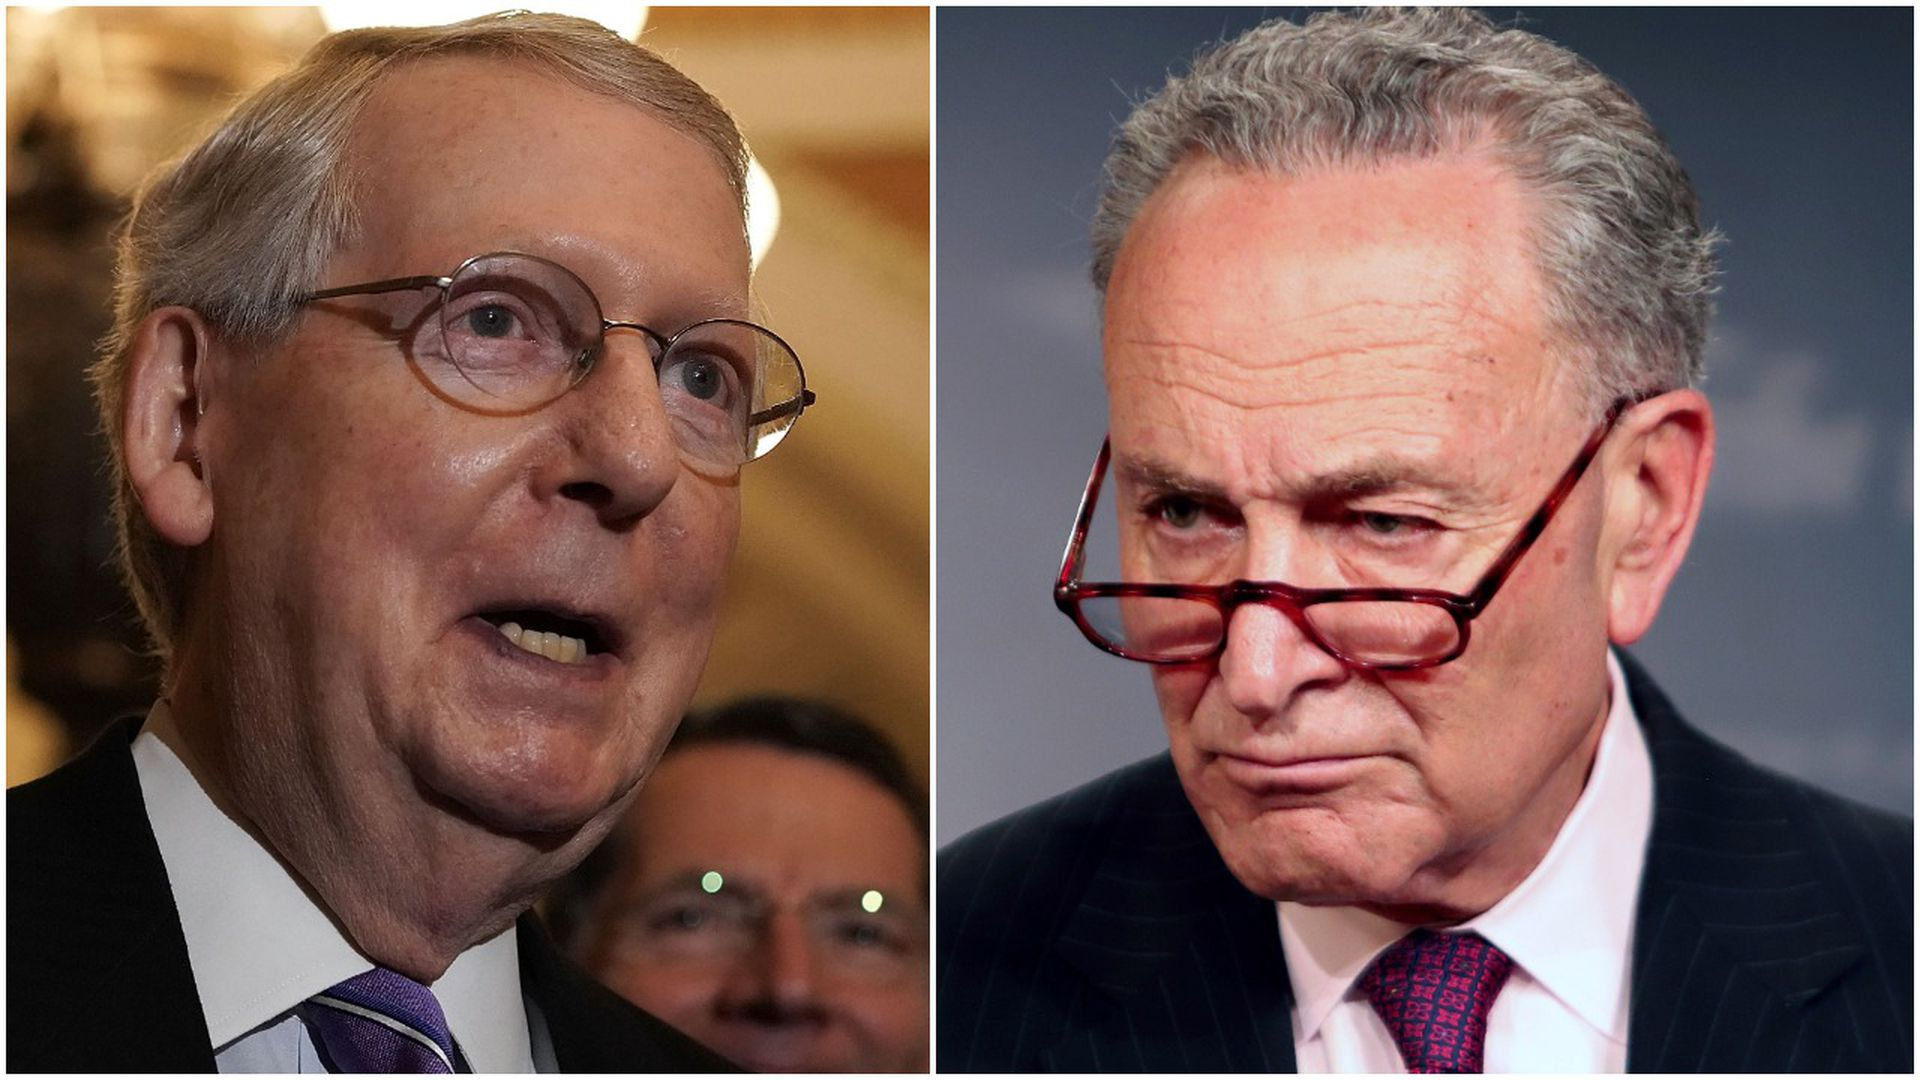 Close up of Mitch McConnell on the left and Chuck Schumer on the right